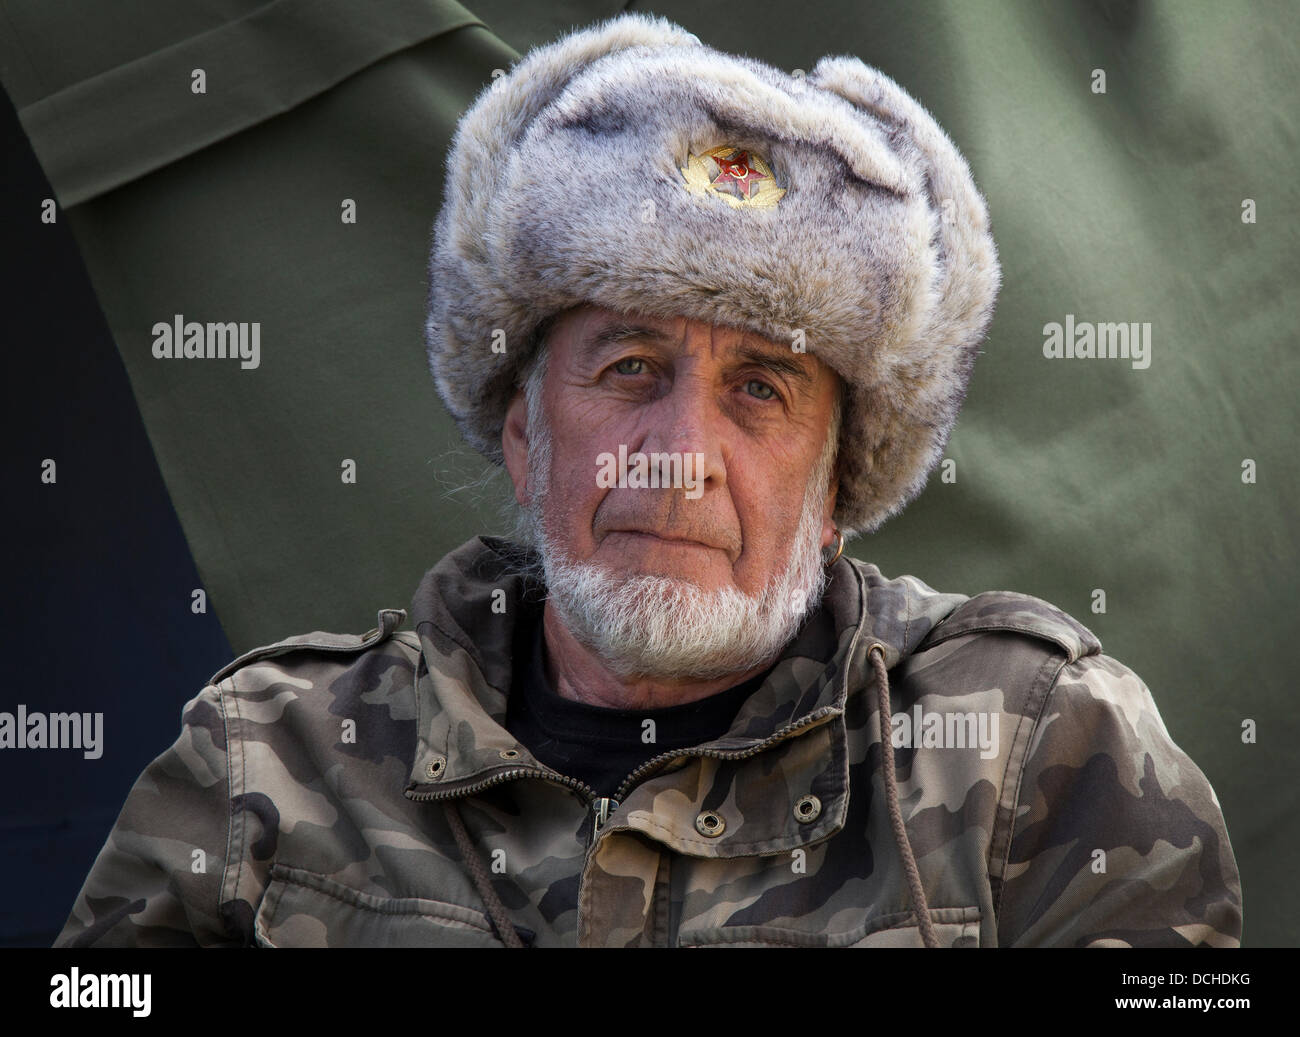 ad3a662e7d0 Russian Military Hat Stock Photos   Russian Military Hat Stock ...